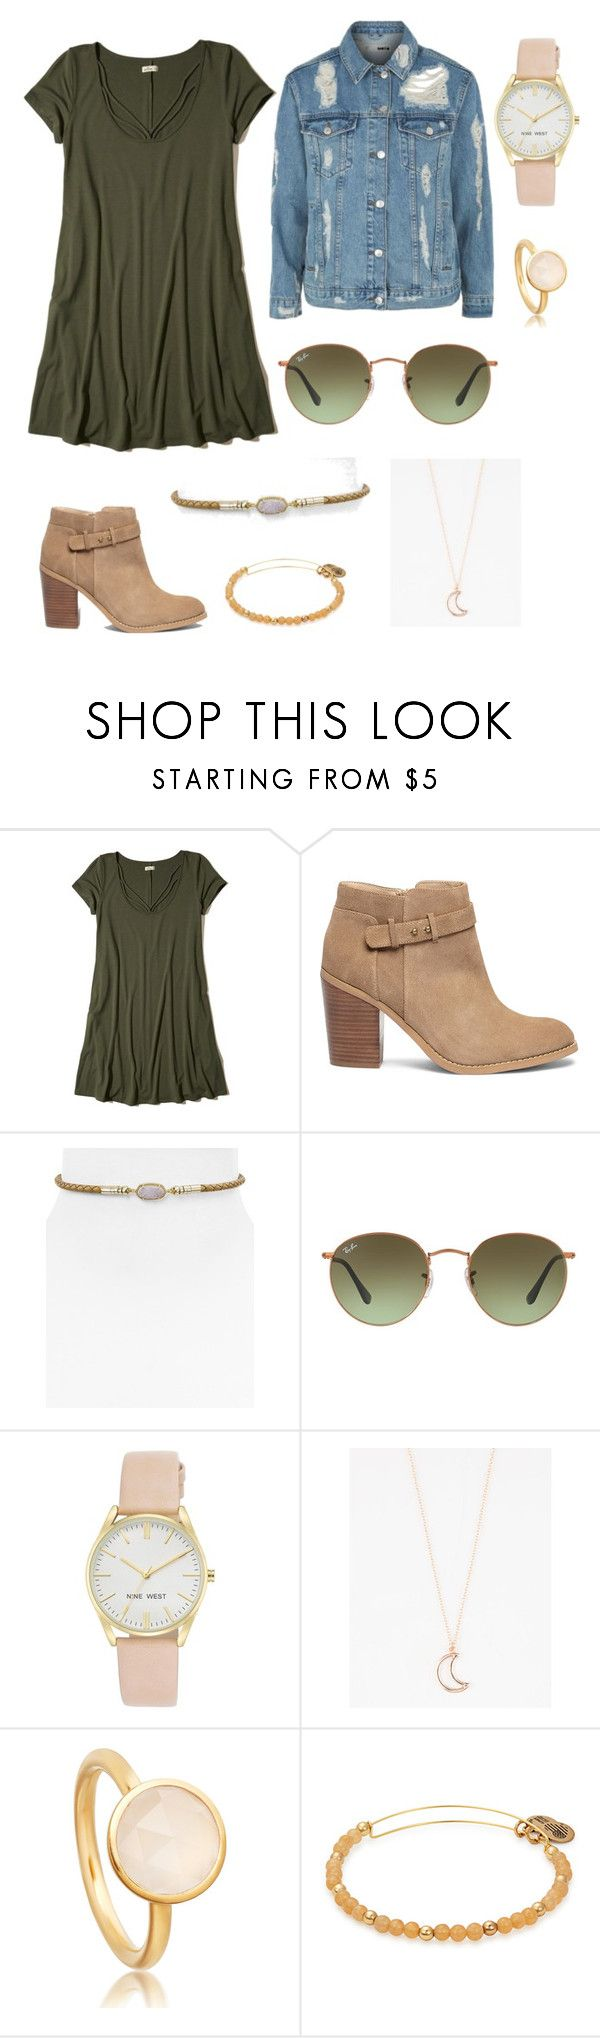 """Untitled #2"" by faithcalvert1211 ❤ liked on Polyvore featuring Hollister Co., Sole Society, Kendra Scott, Ray-Ban, Nine West, Full Tilt and Topshop"